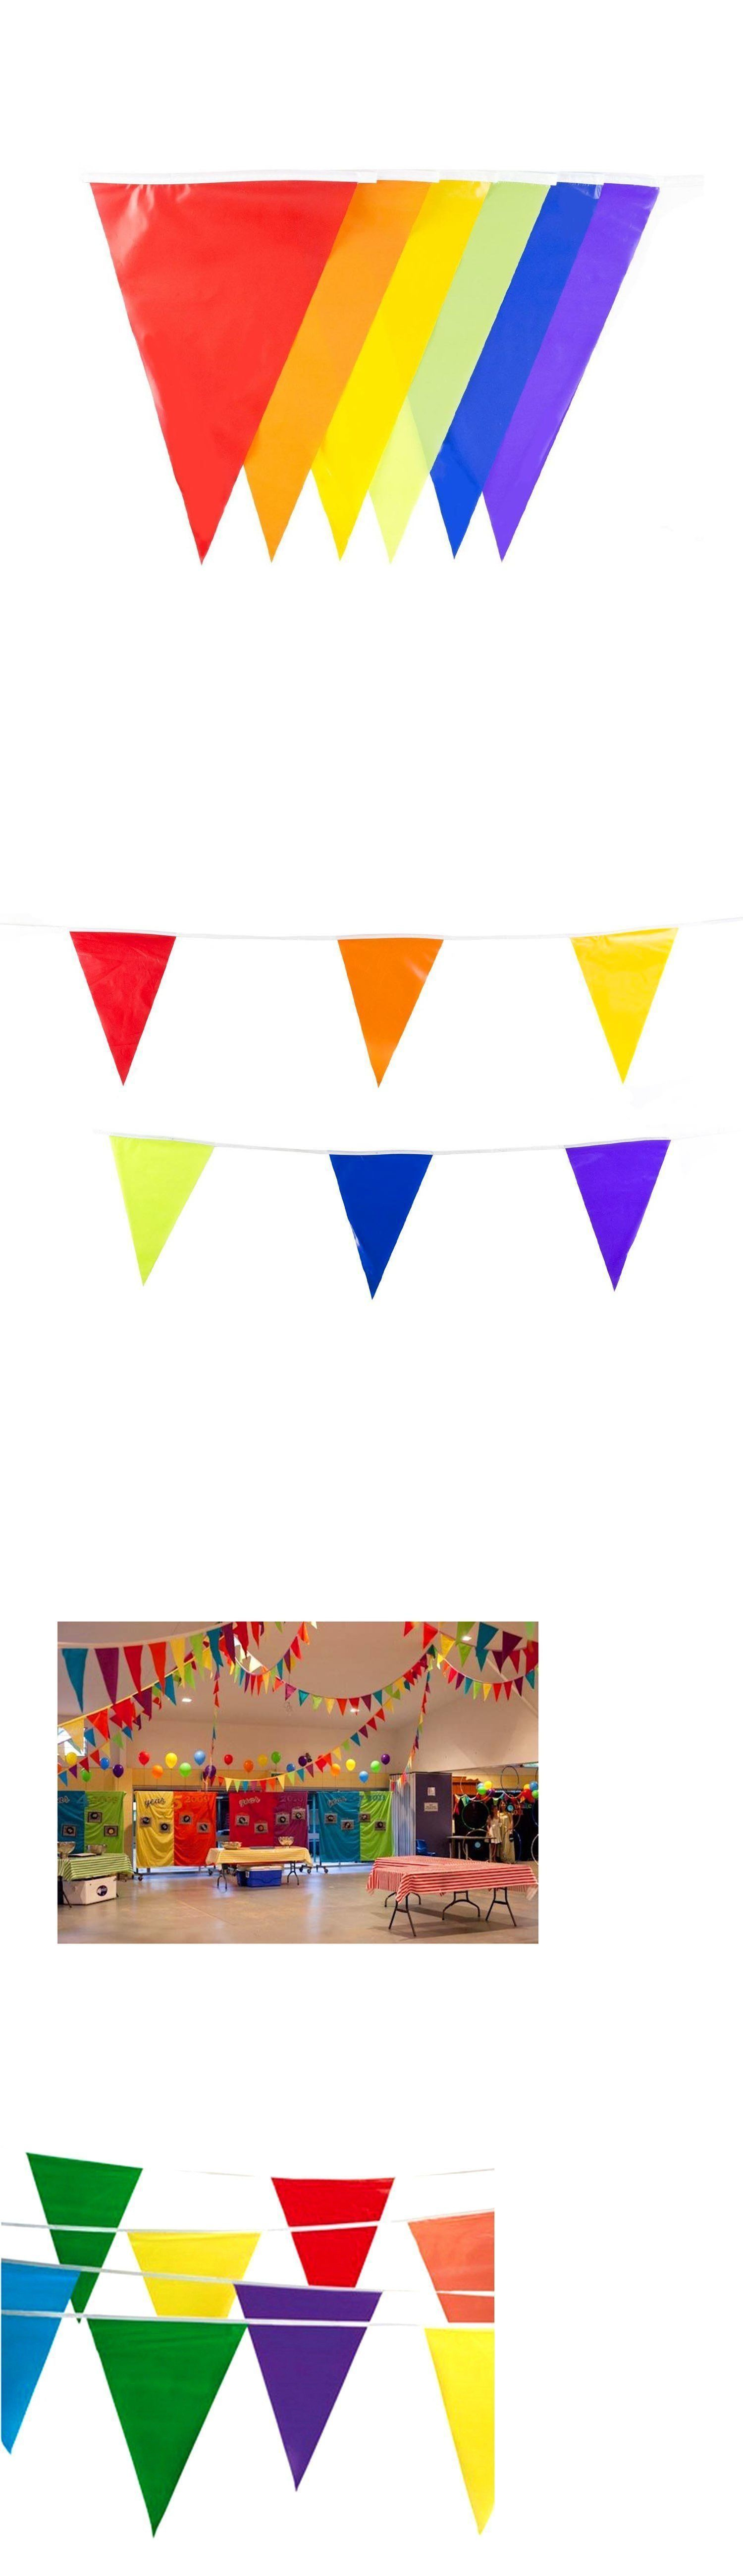 Banners bunting and garlands foot birthday party pennant